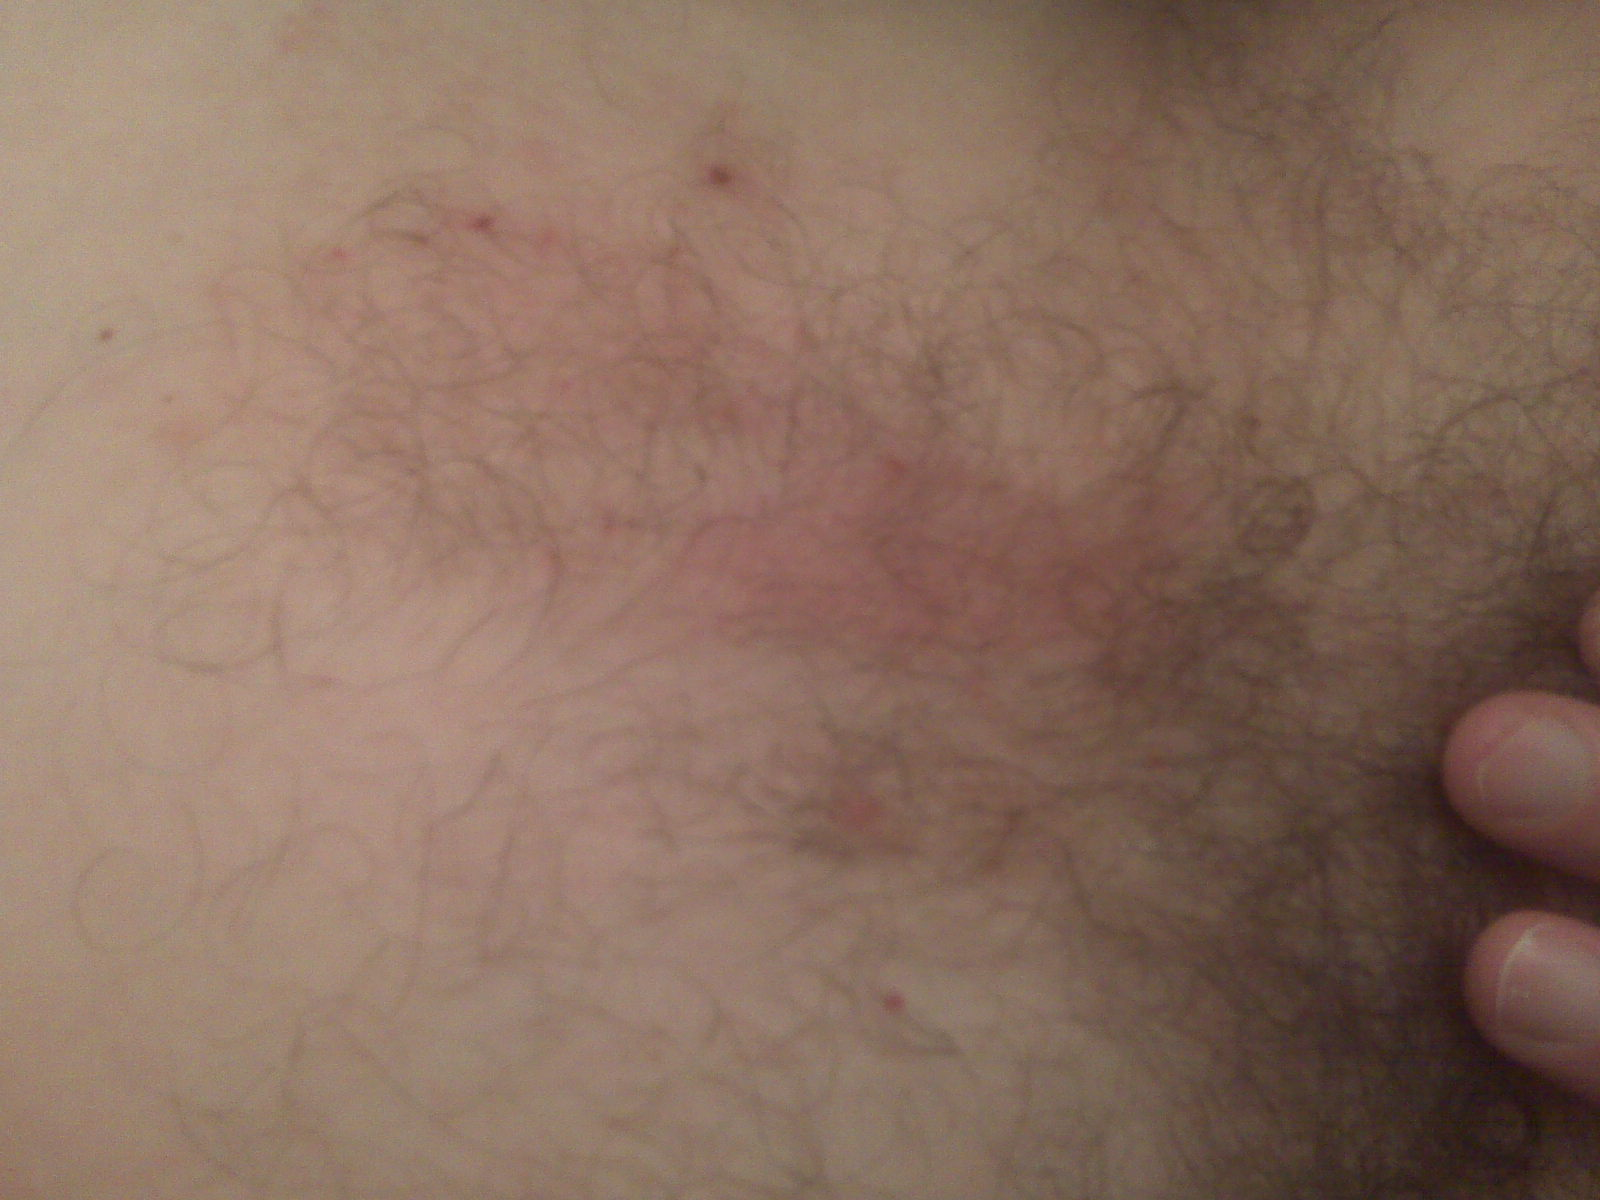 thigh do not coorespond with sweat. I currently have no rash under my